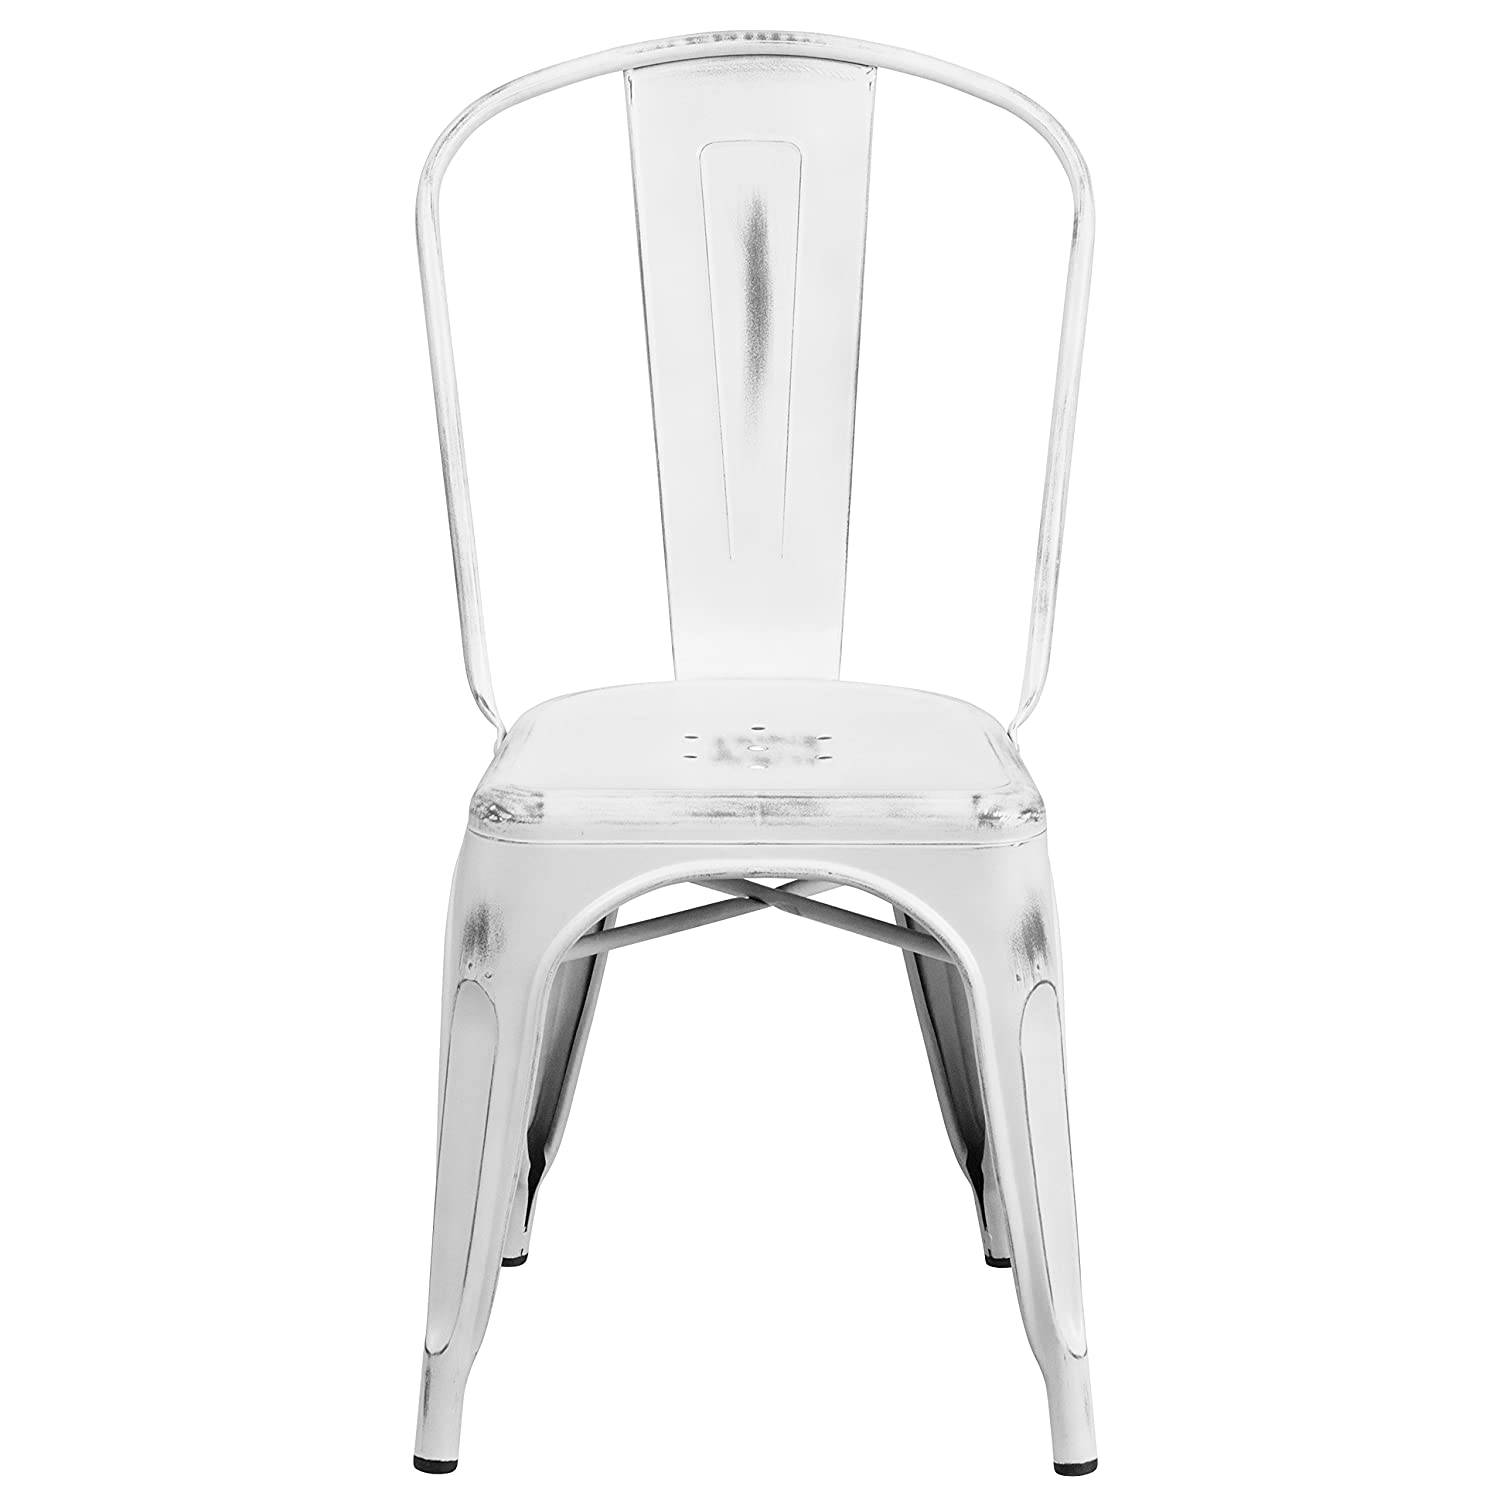 Metal outdoor stacking chairs - Amazon Com Flash Furniture Distressed White Metal Indoor Outdoor Stackable Chair Chairs